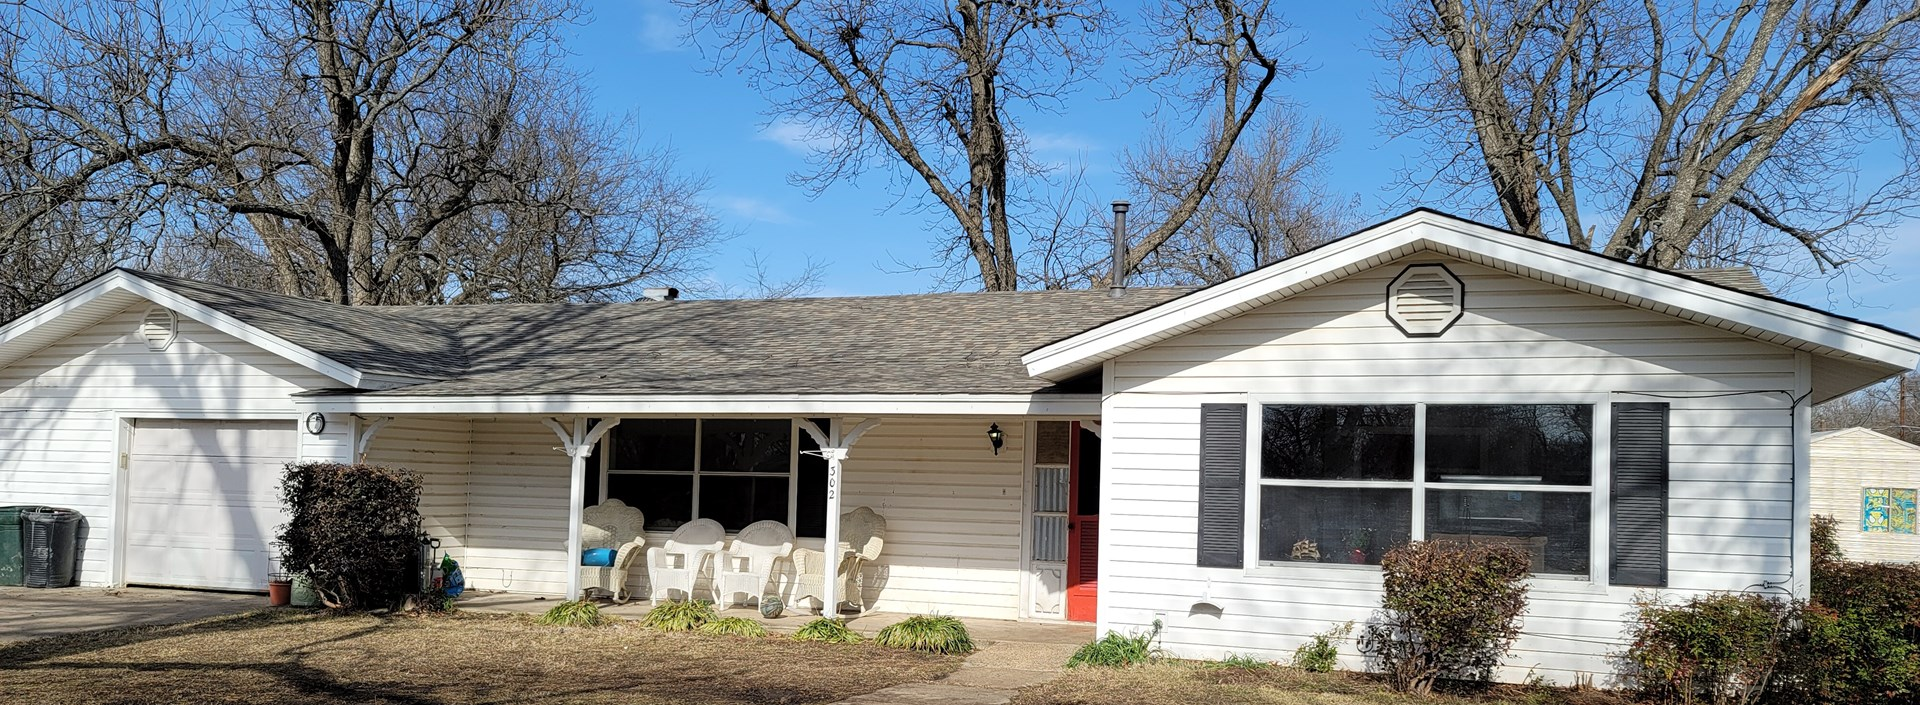 Country Home In Town For Sale Located In Roxton Texas